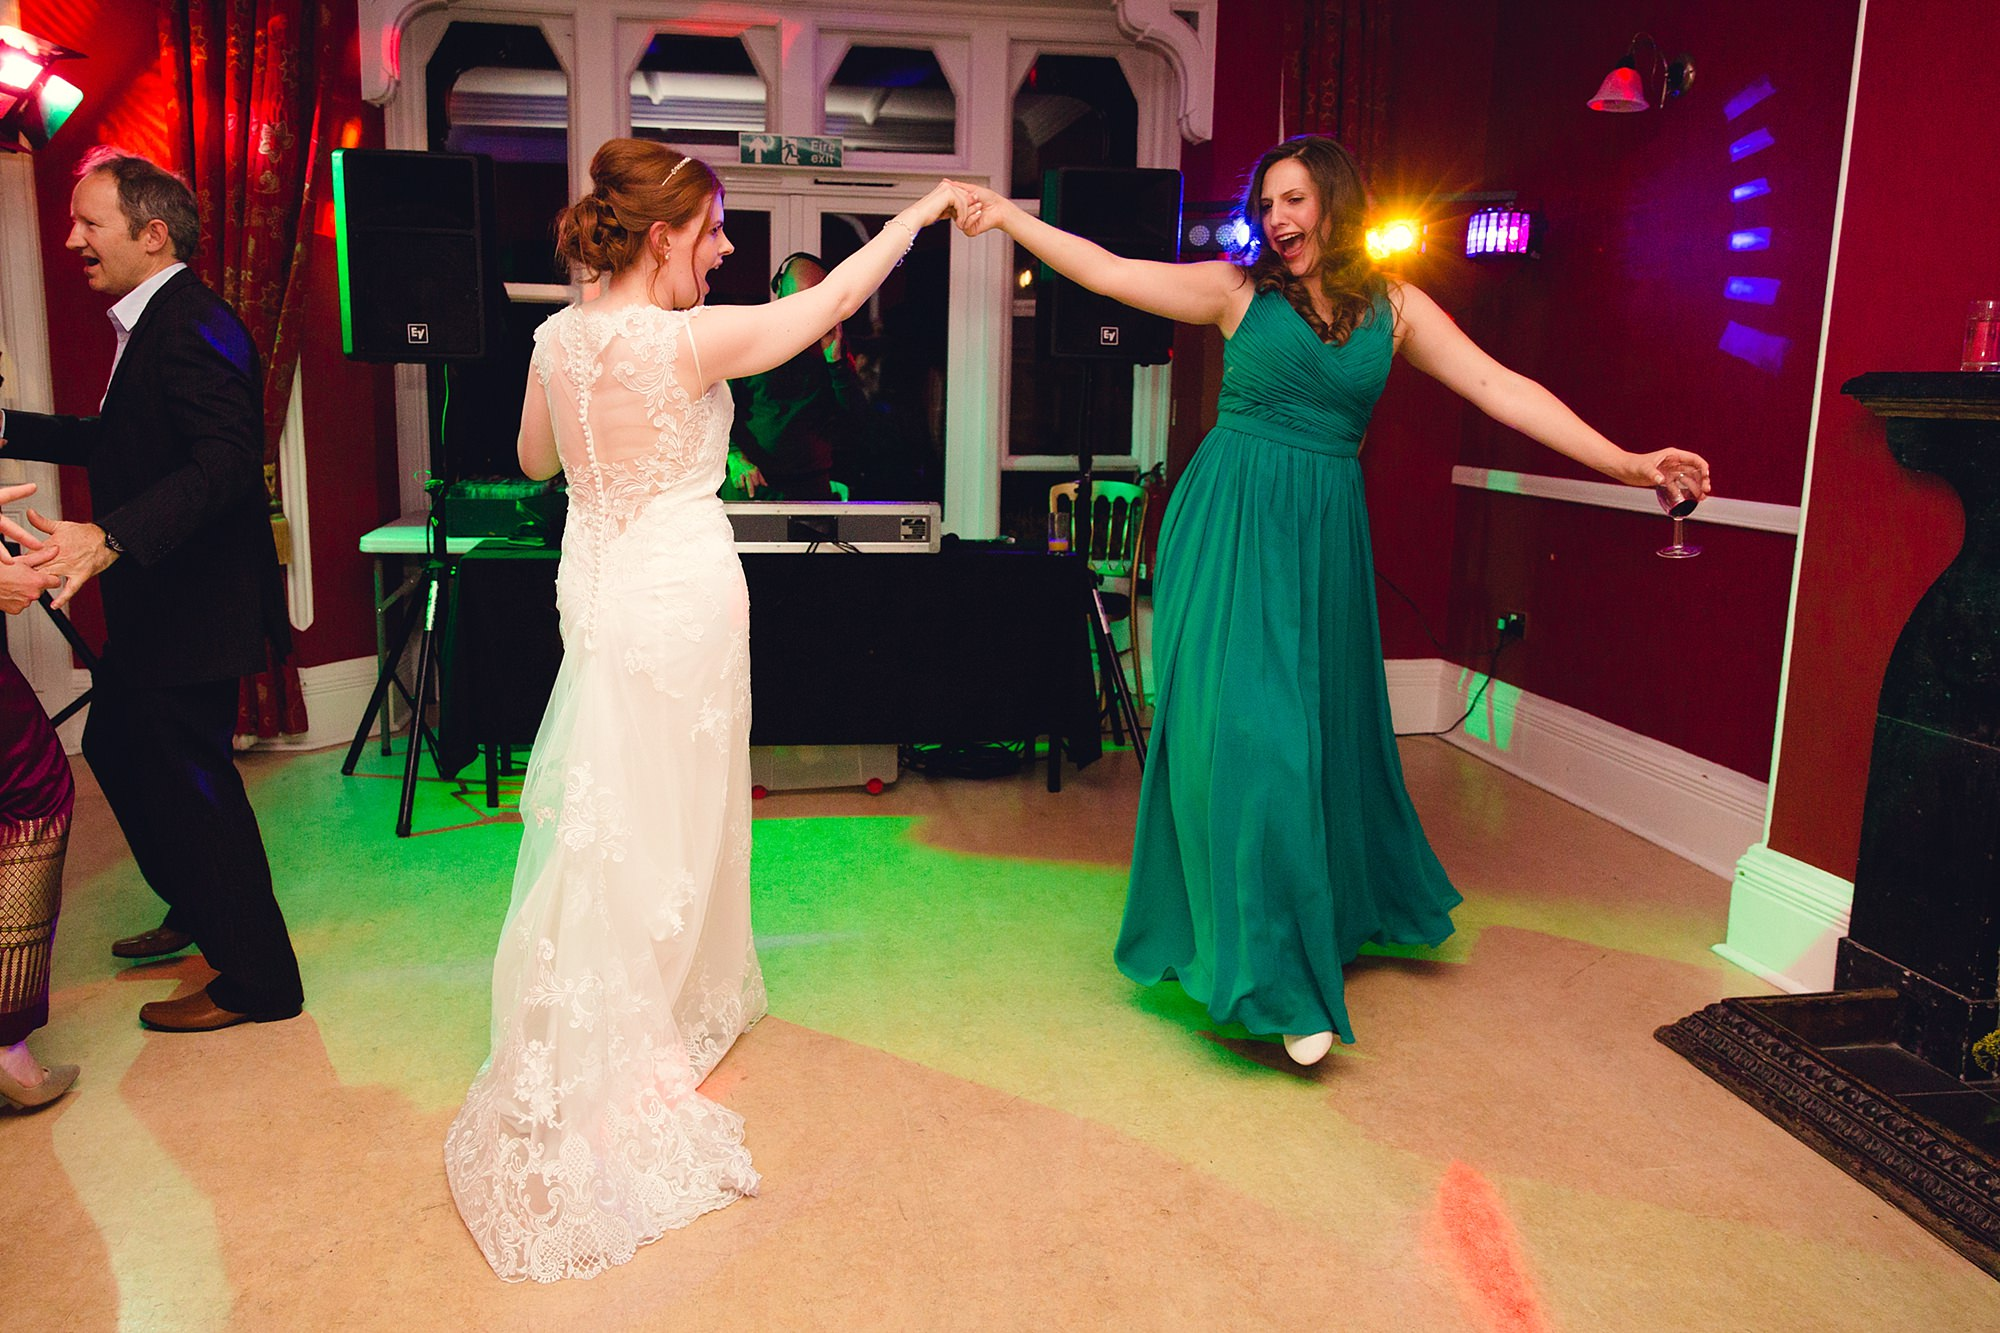 Canon Lane Chichester wedding bride dances with bridesmaid